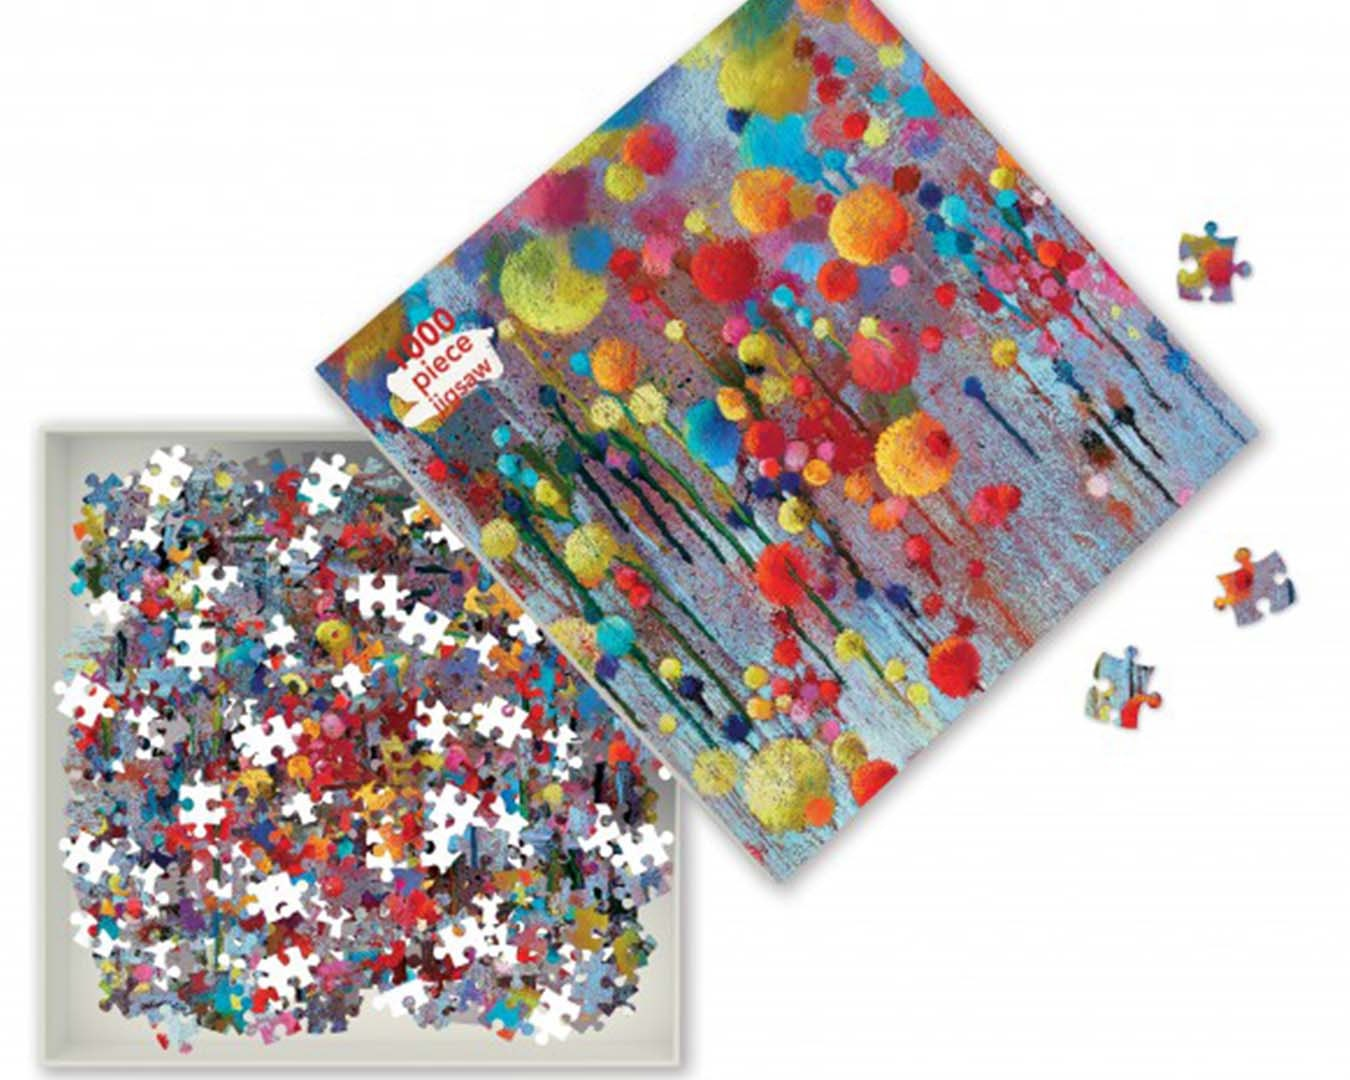 Open puzzle box showing a mixture of puzzle pieces and a colourful print on the box.